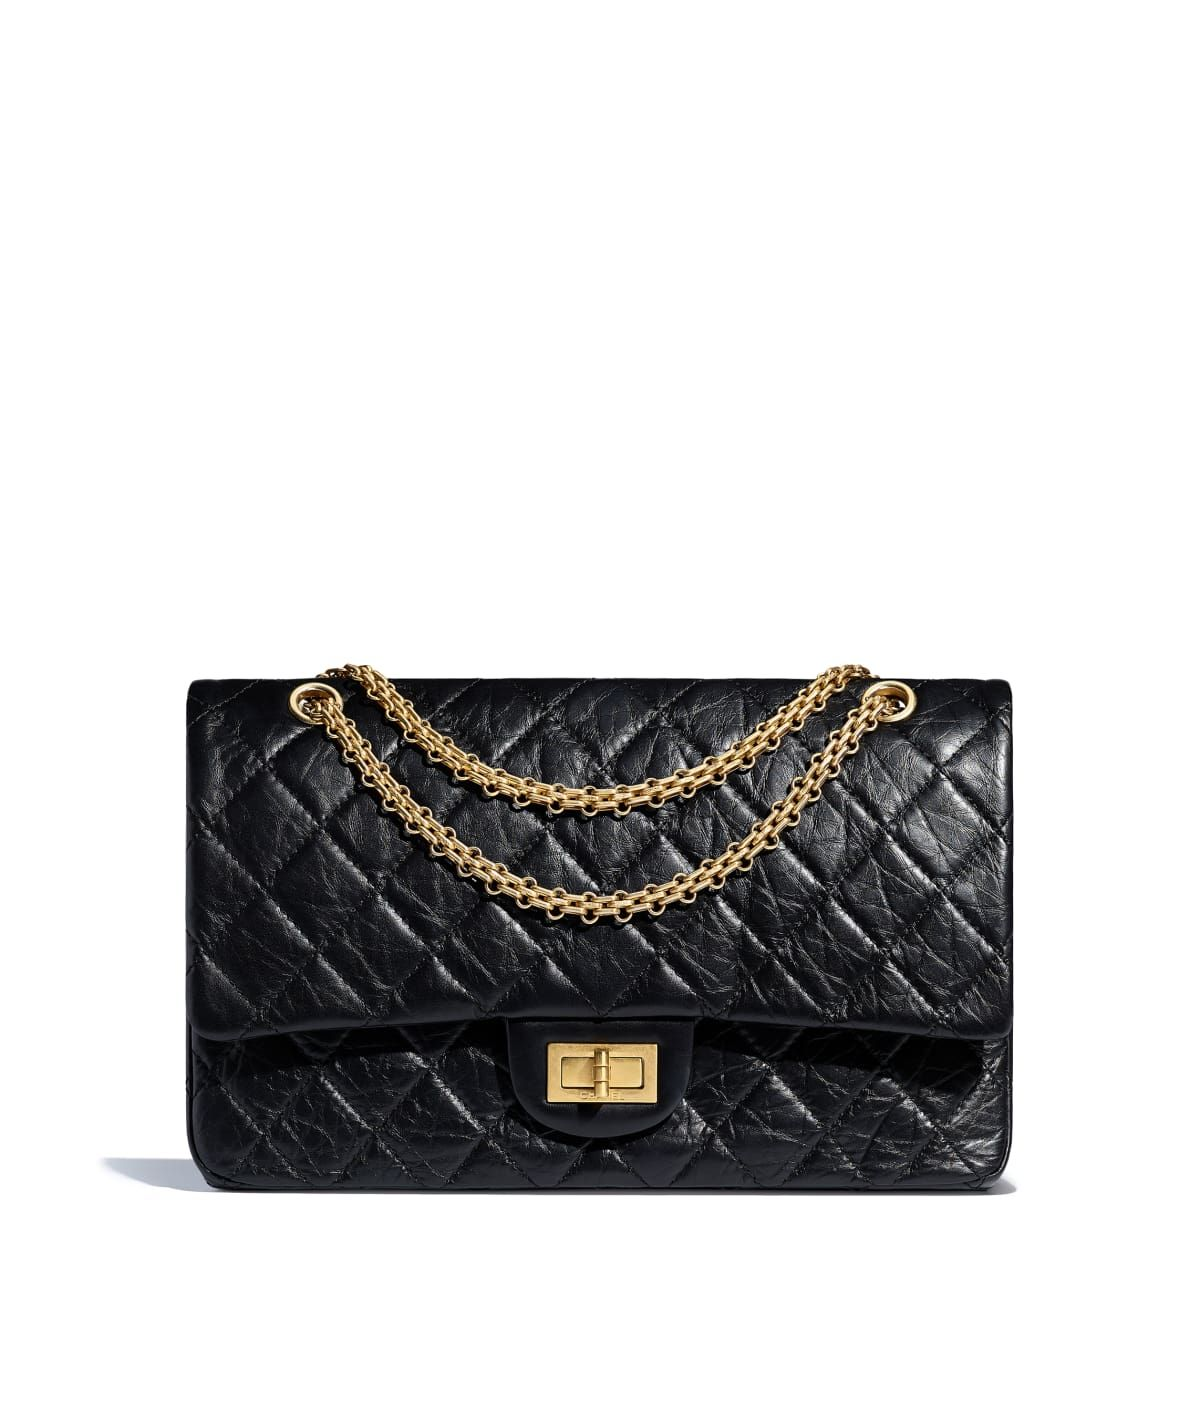 b267bea44fdb Handbags of the Spring-Summer 2019 Pre-Collection CHANEL Fashion collection    Maxi 2.55